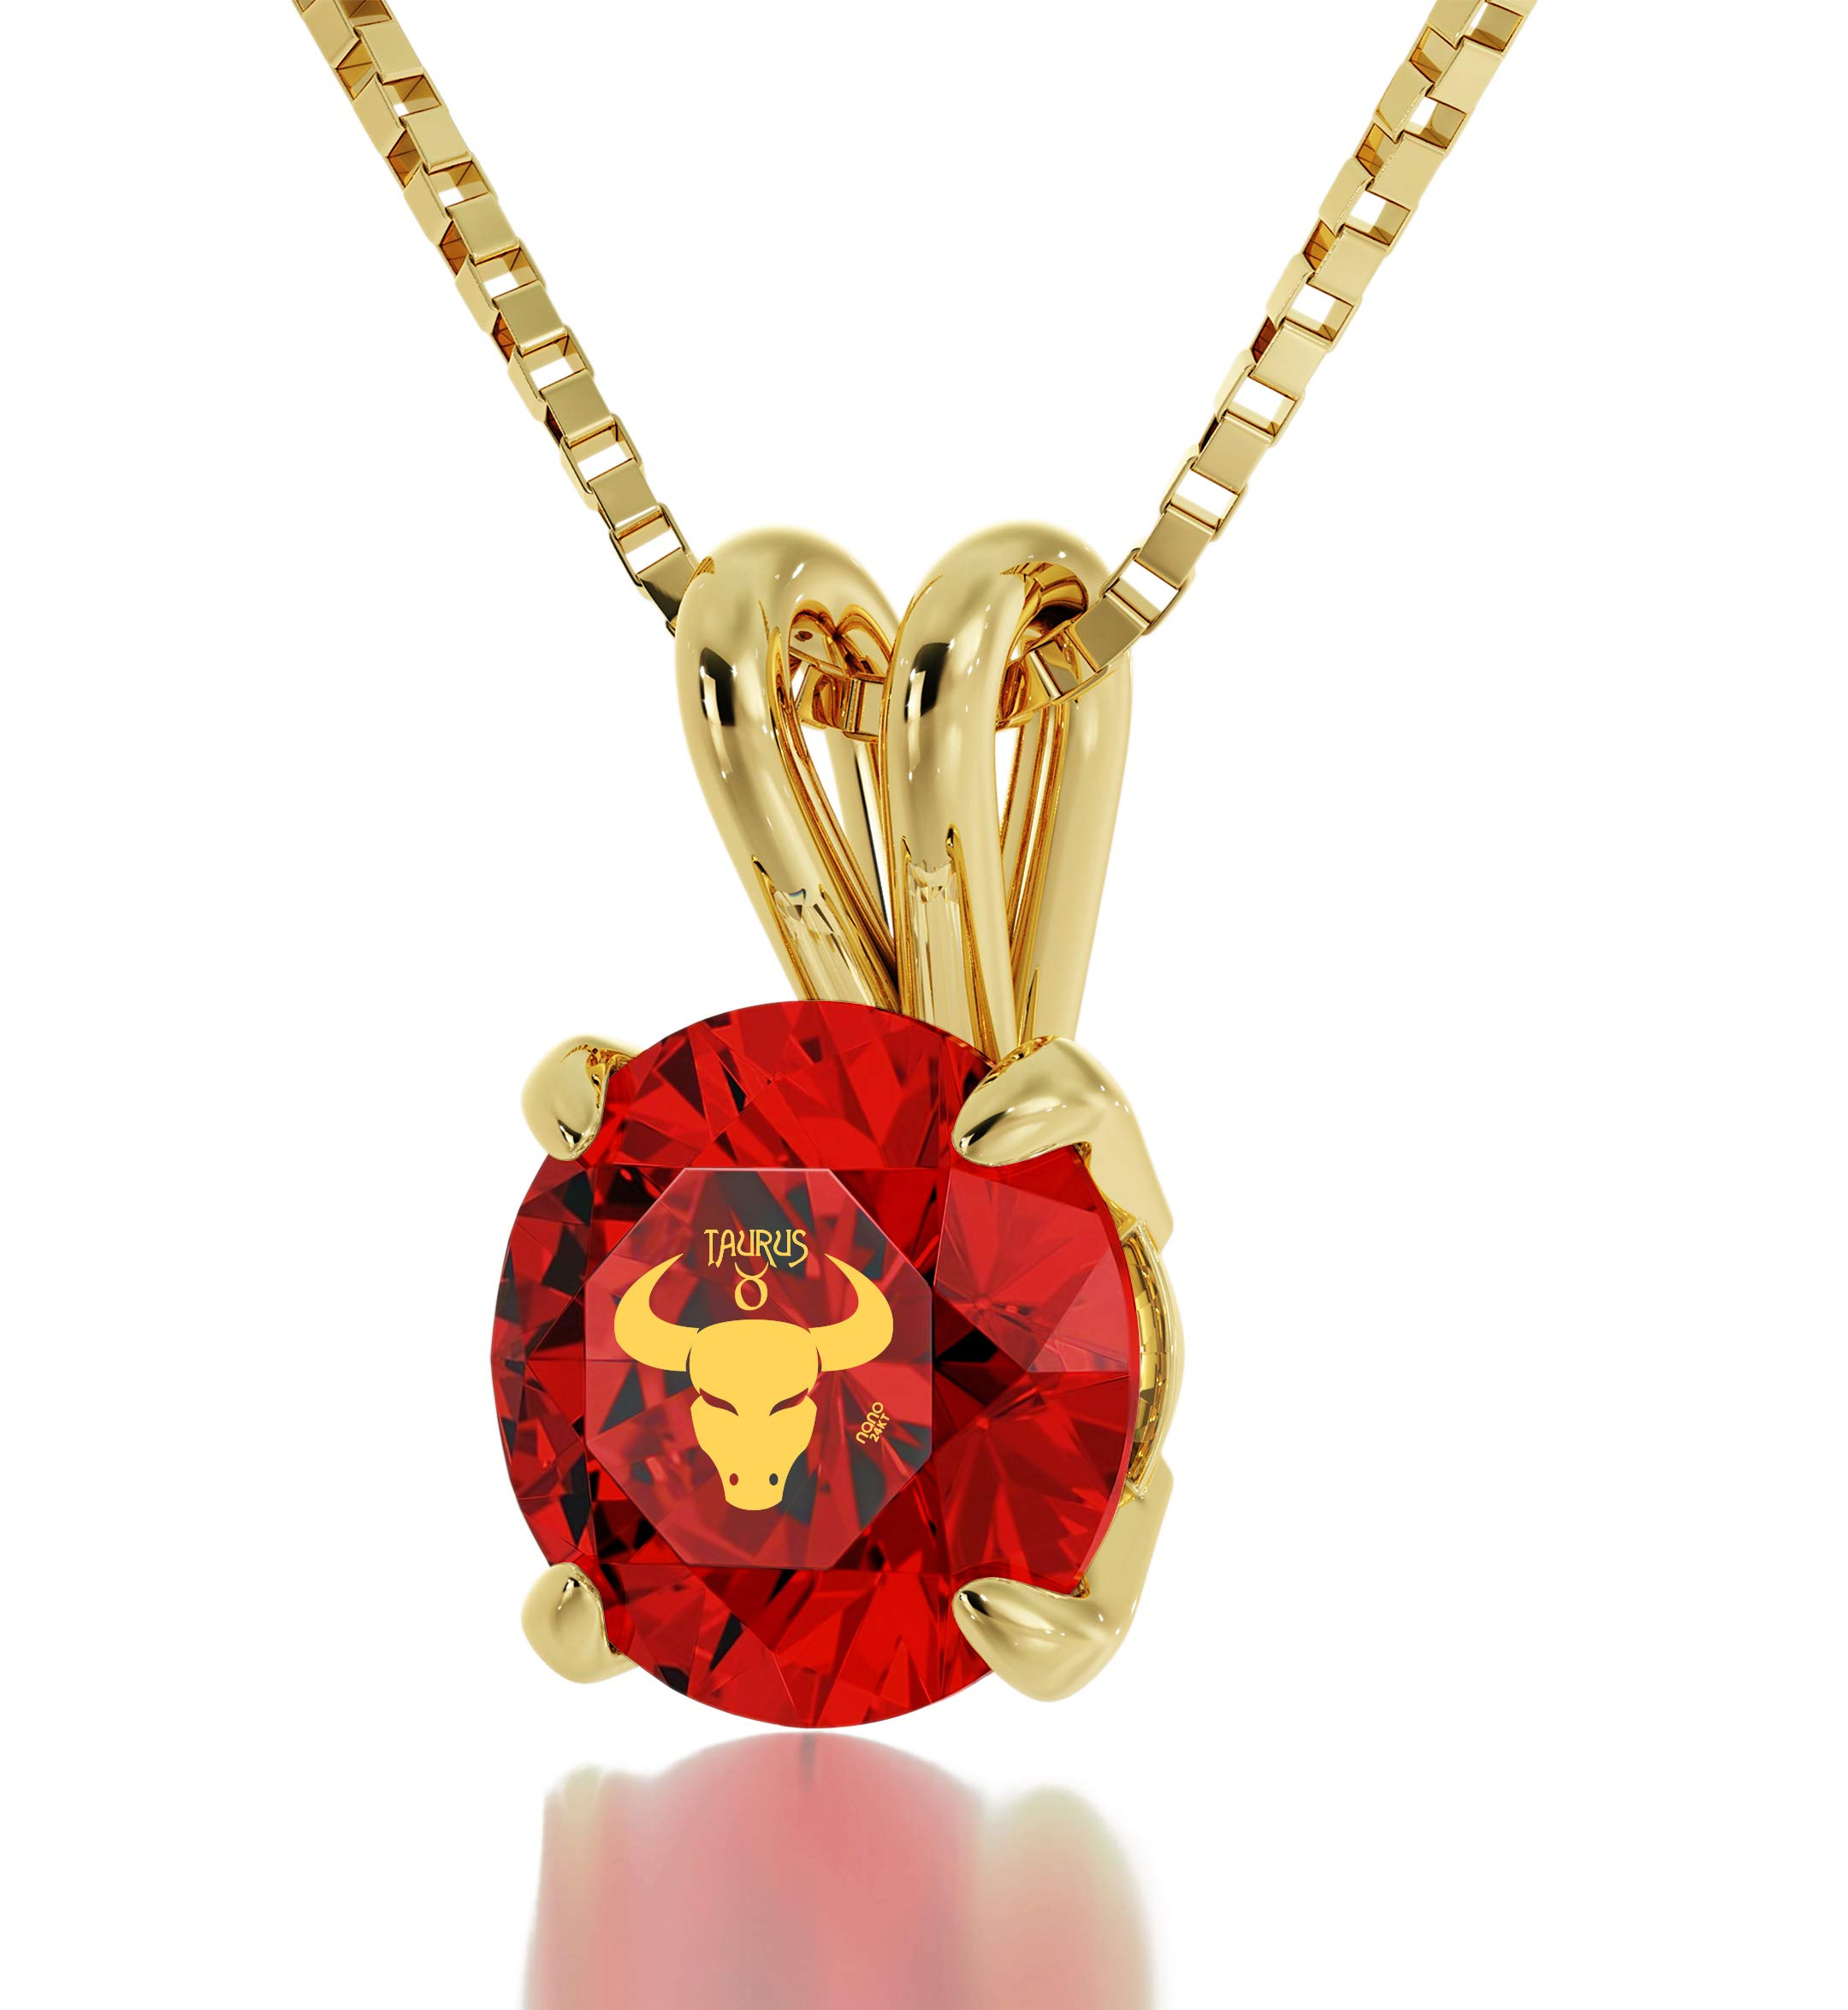 """Gold Plated Taurus Necklace Zodiac Pendant for Birthdays 20th April to 20th May 24k Gold Inscribed with Star Sign and Symbol on Solitaire Set Swarovski Crystal Stone, 18"""" Gold Filled Chain"""